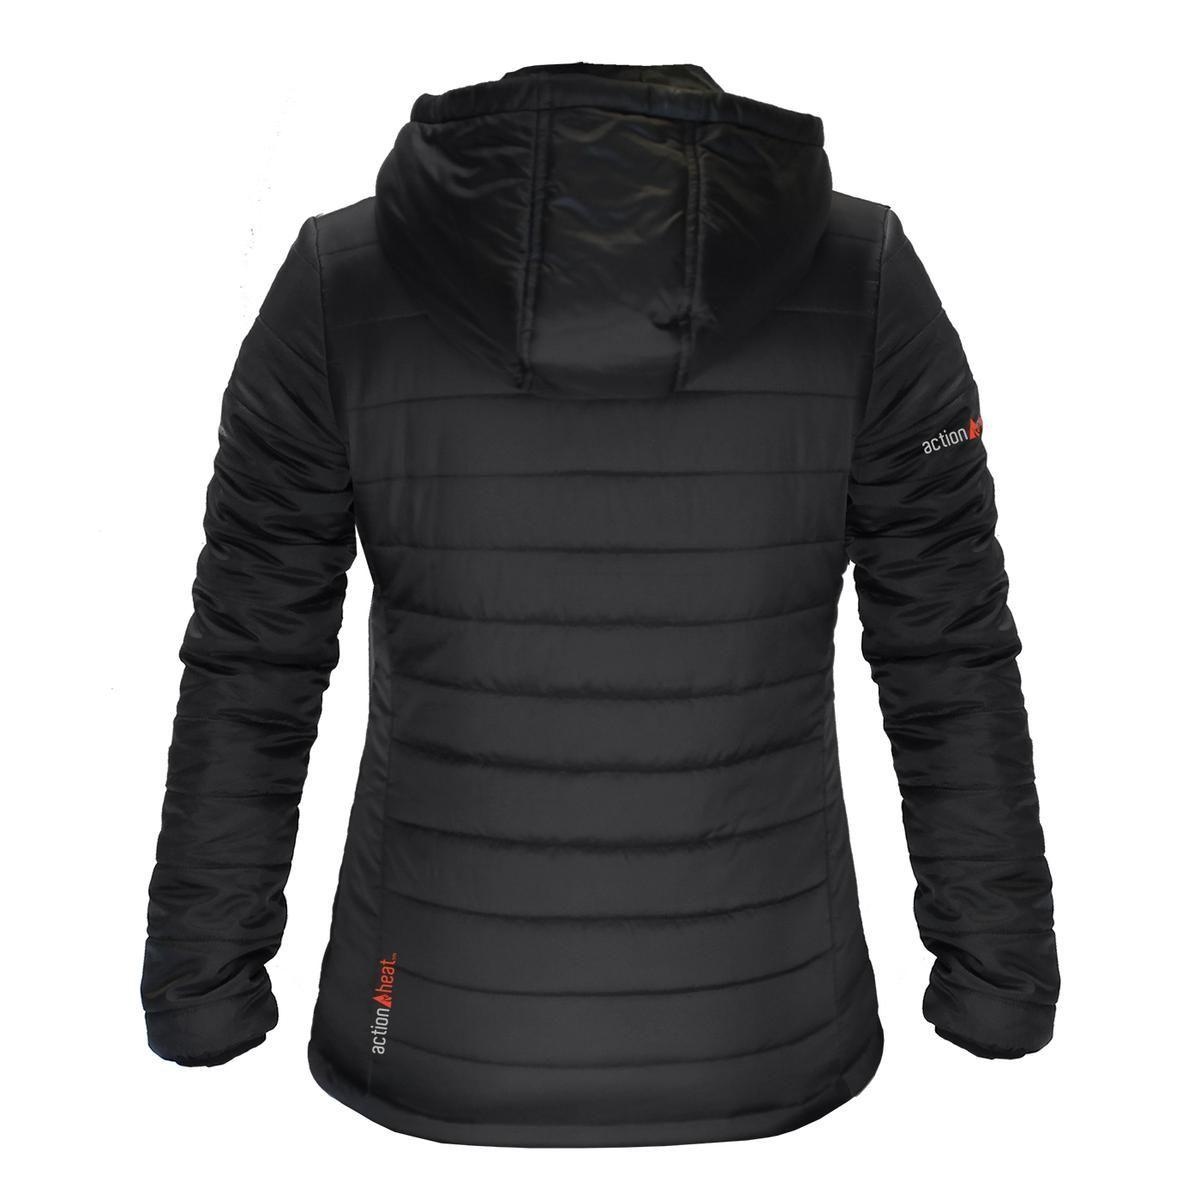 Open Box ActionHeat 5V Battery Heated Insulated Puffer Jacket W/ Hood - Women's - Info